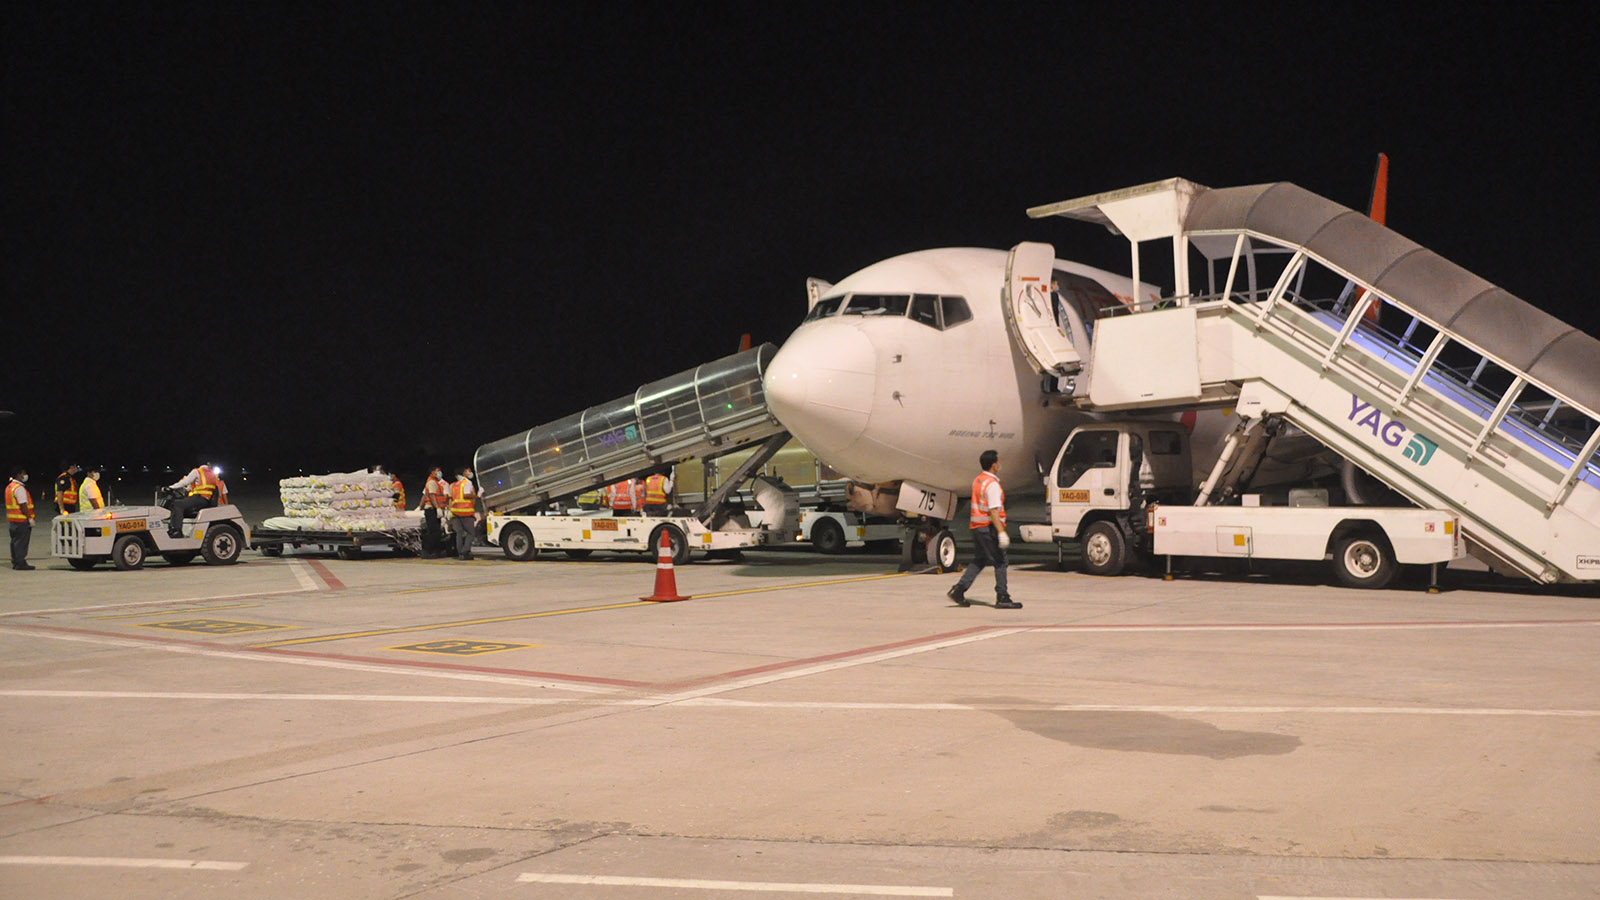 A cargo plane carrying raw materials for garments in Myanmar lands at Yangon International Airport.Photo: Than Htaik